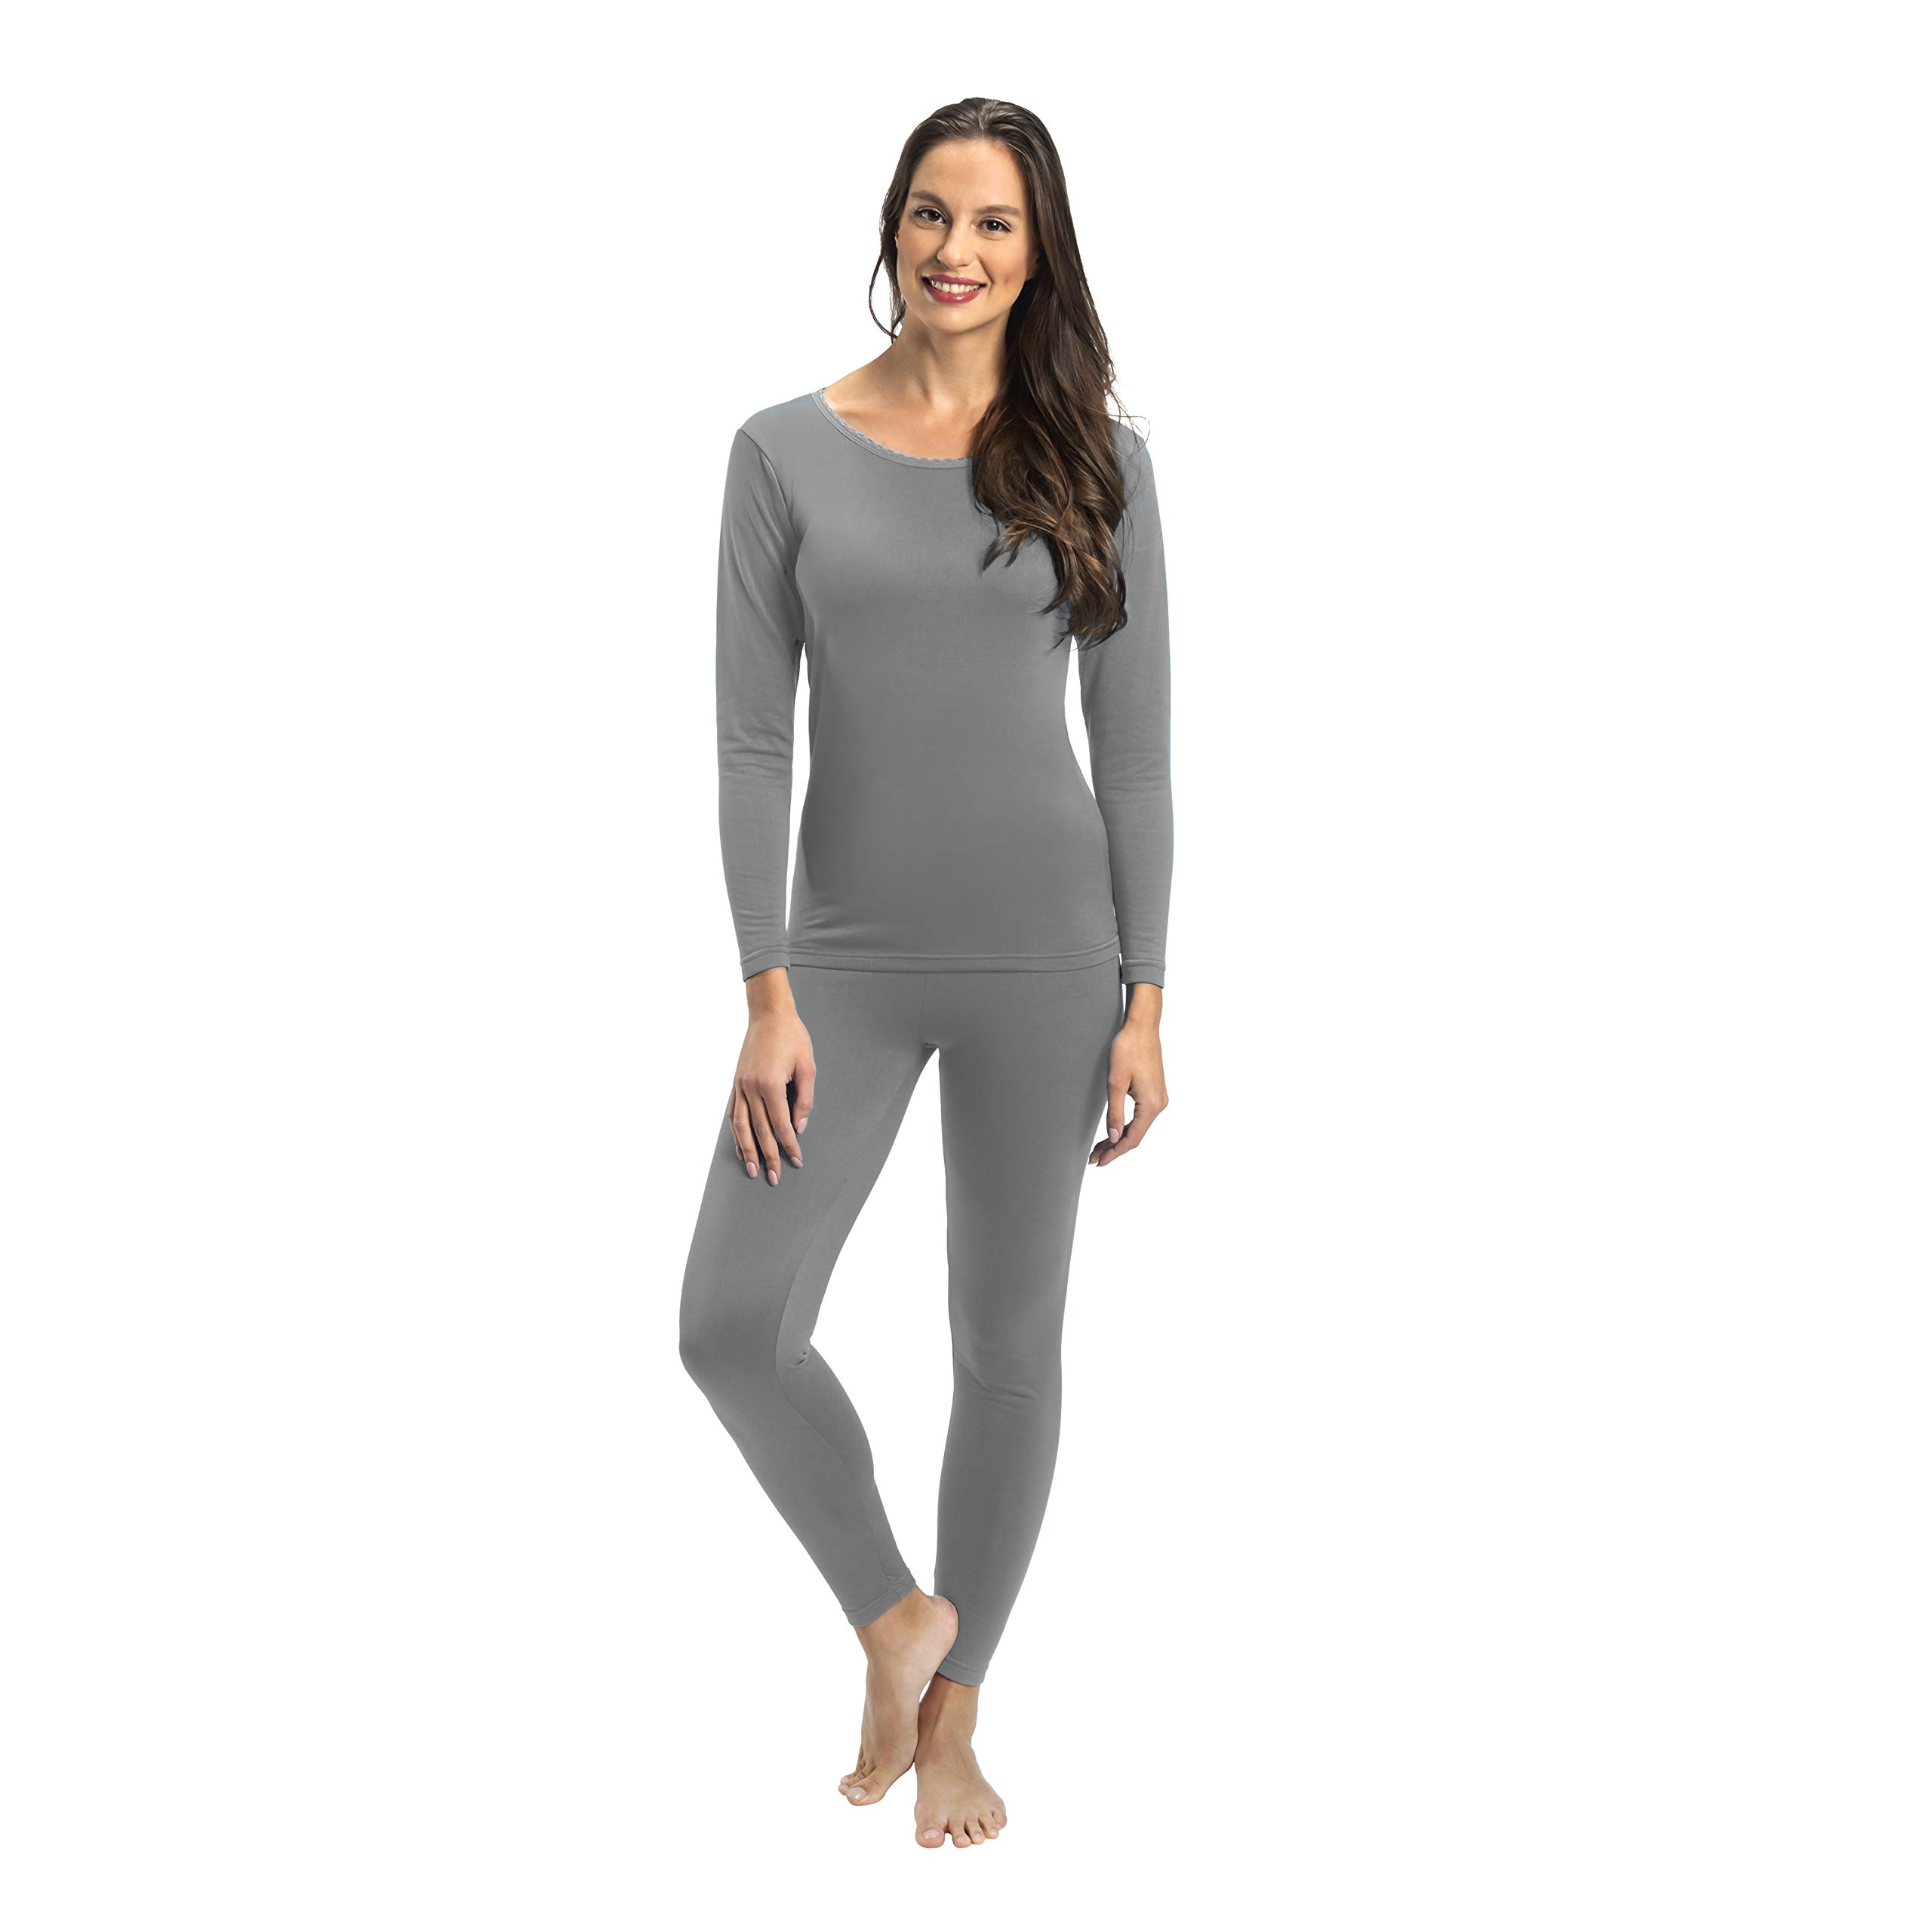 Rocky Womens Thermal 2 Pc Long John Underwear Set Top and Bottom Smooth Knit (Small, Grey) by Rocky